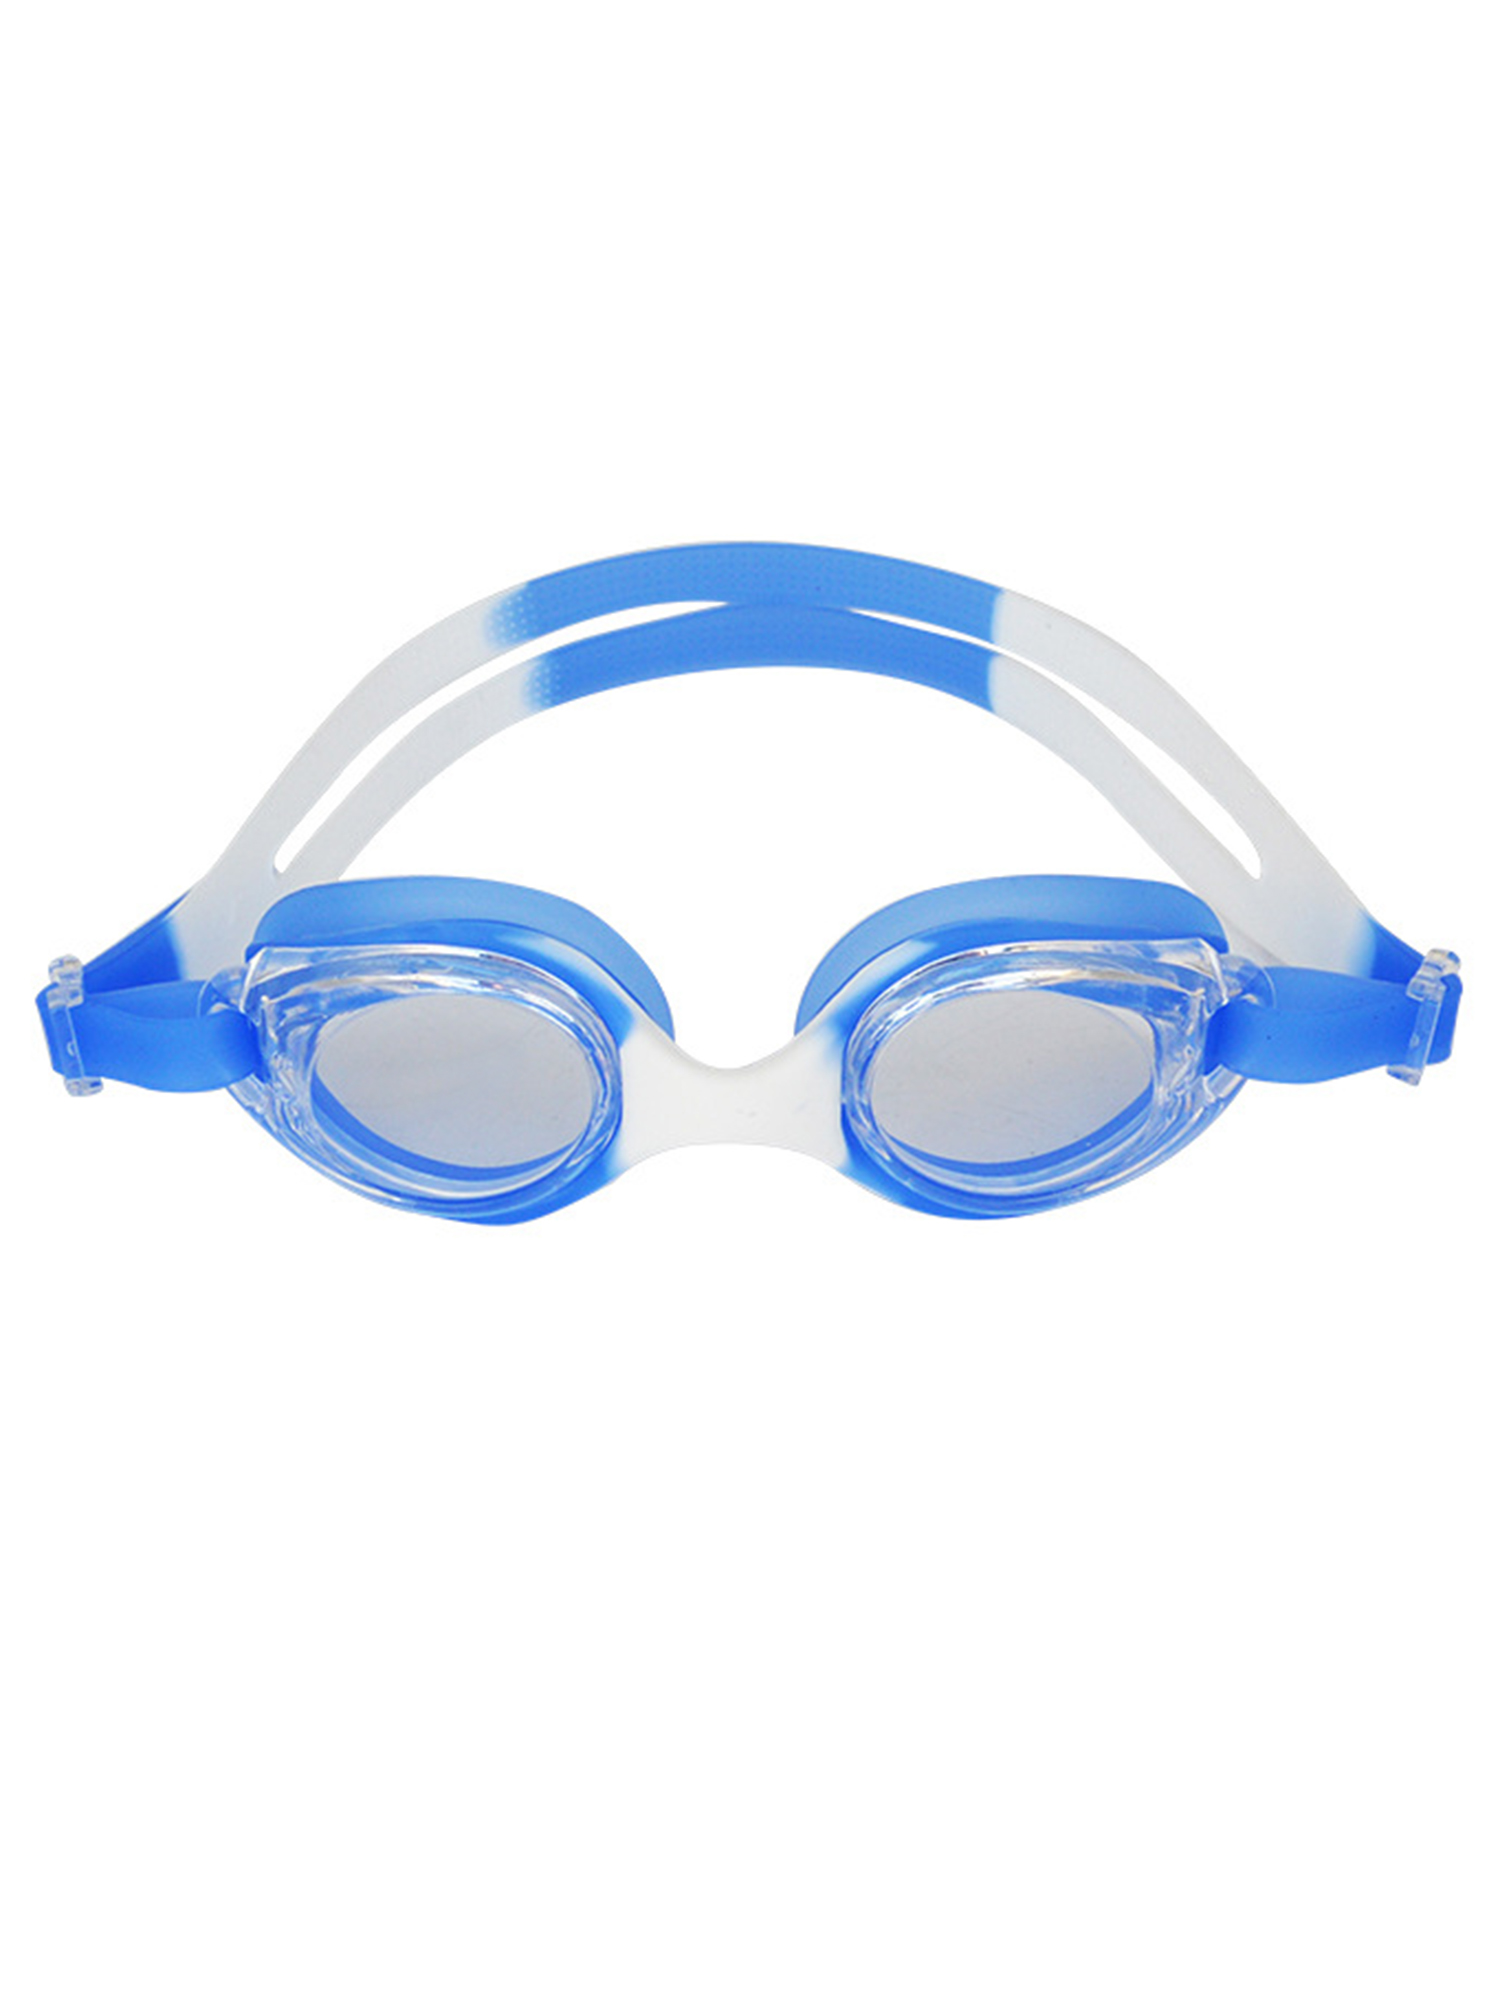 Clearance! Swimming Goggles for Kids, Anti-fog Swim Goggles for Children, Waterproof Swim Goggles with Transparent Lens... by